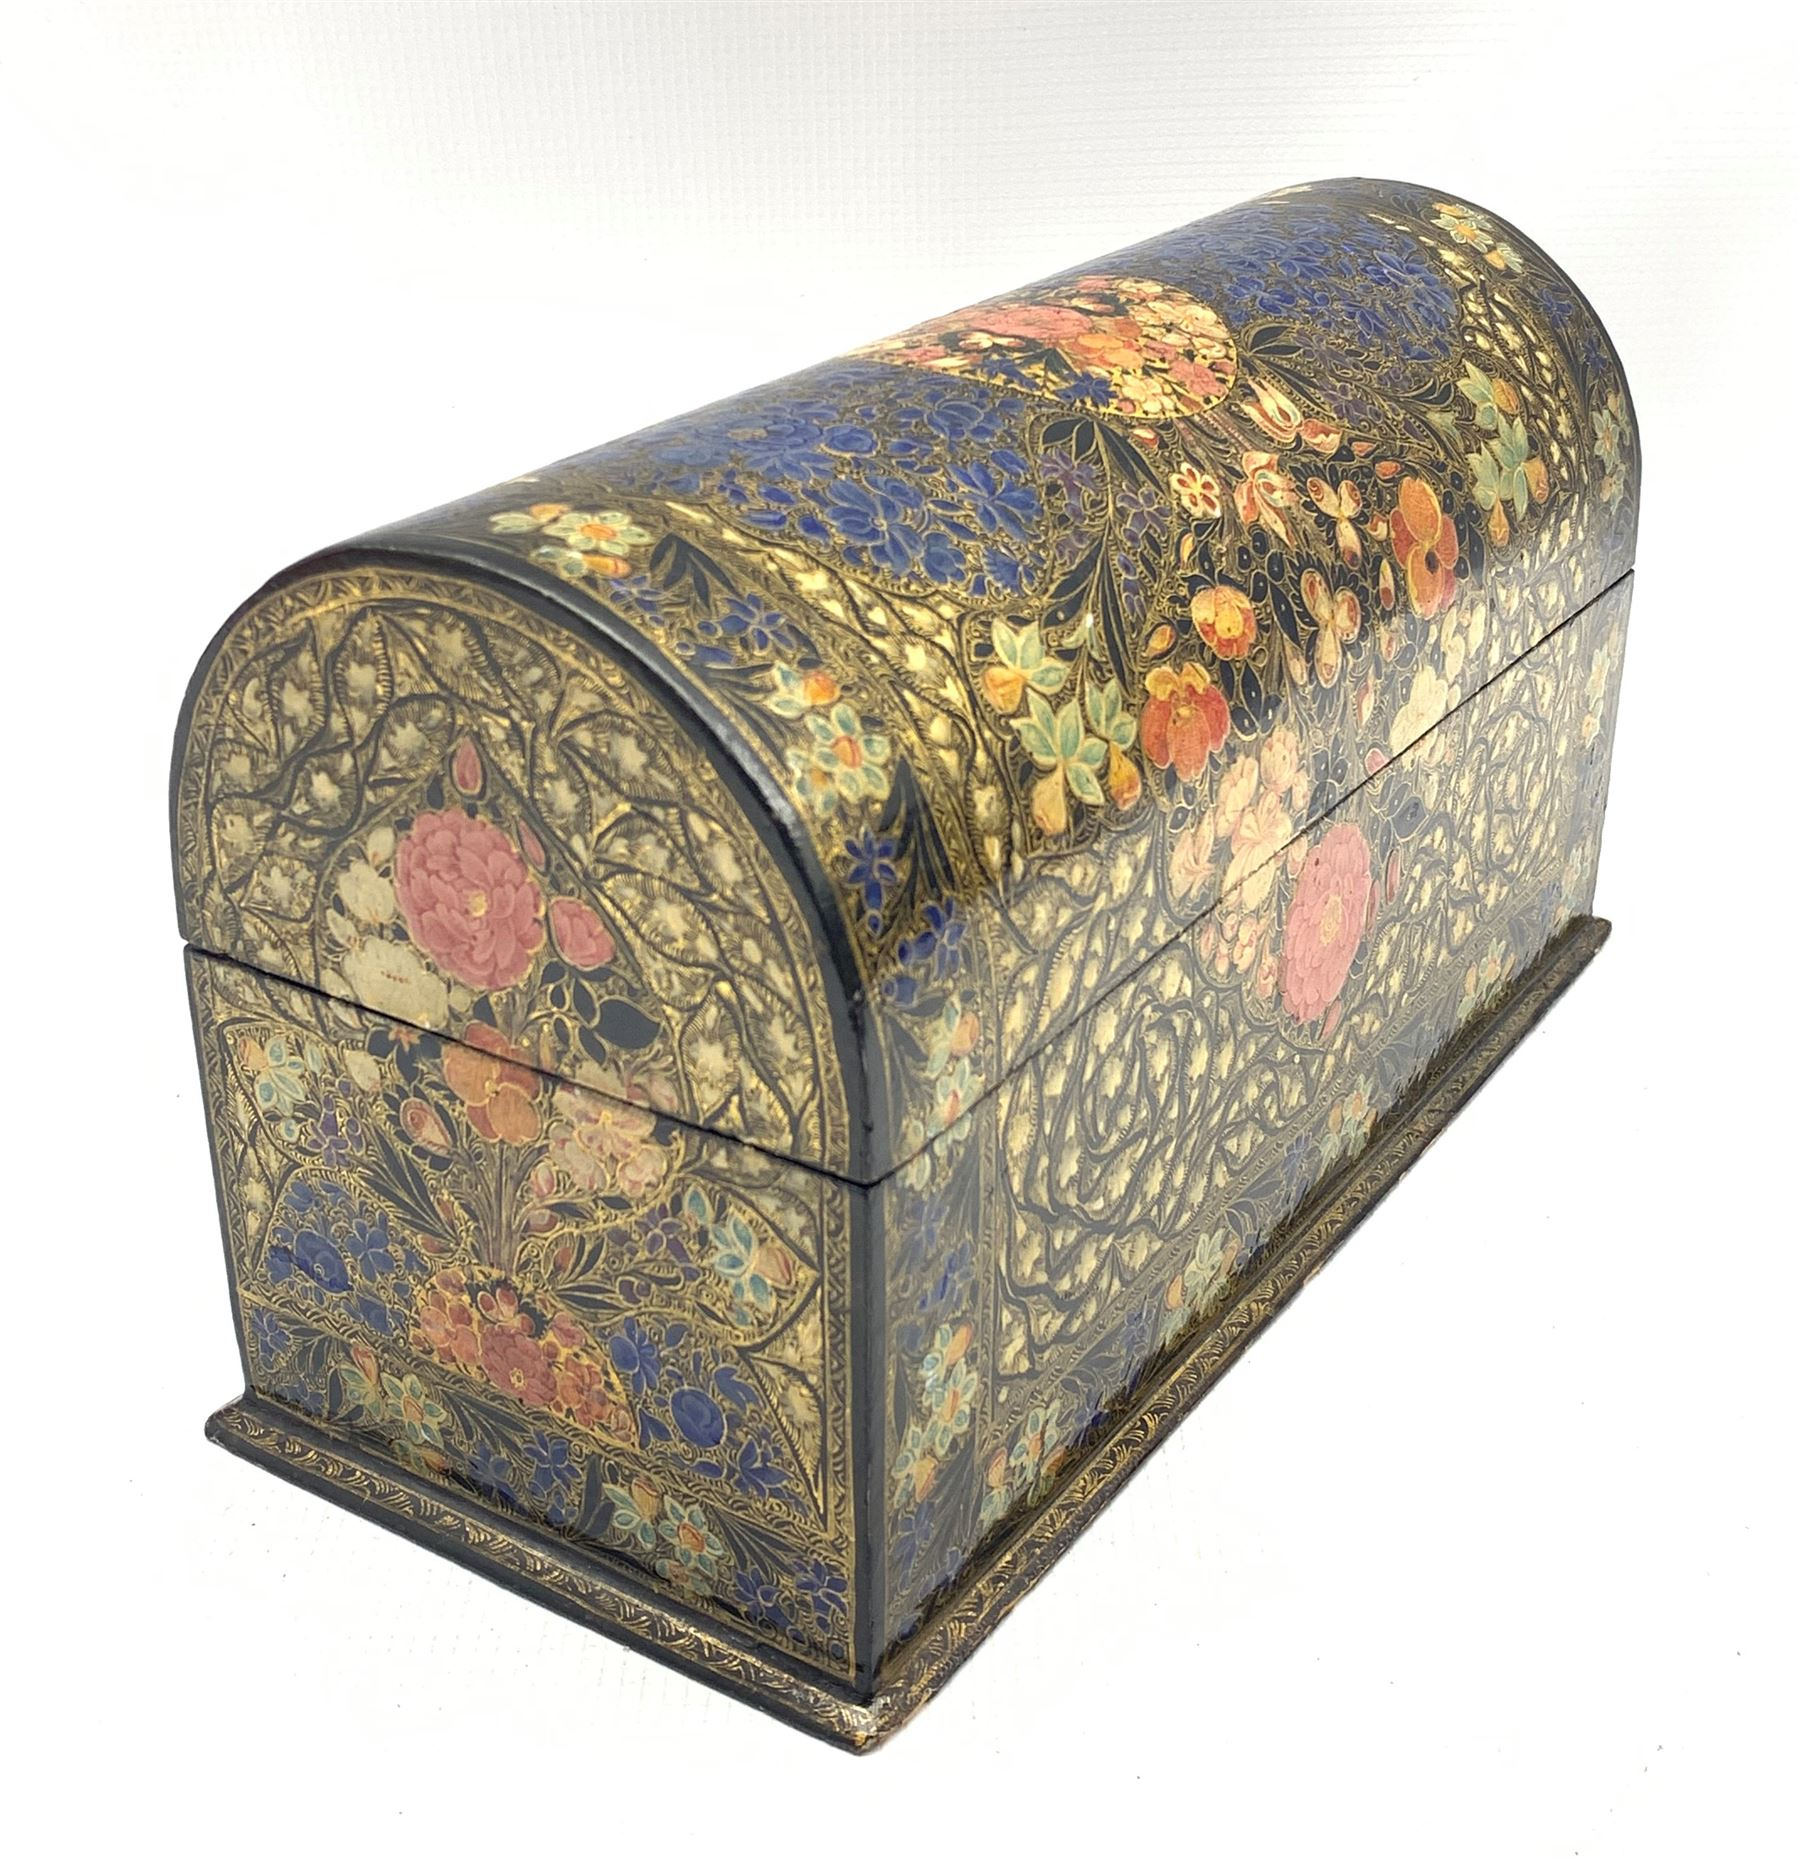 Kashmiri lacquered stationery casket with domed cover and divided interior painted with flower heads - Image 2 of 4